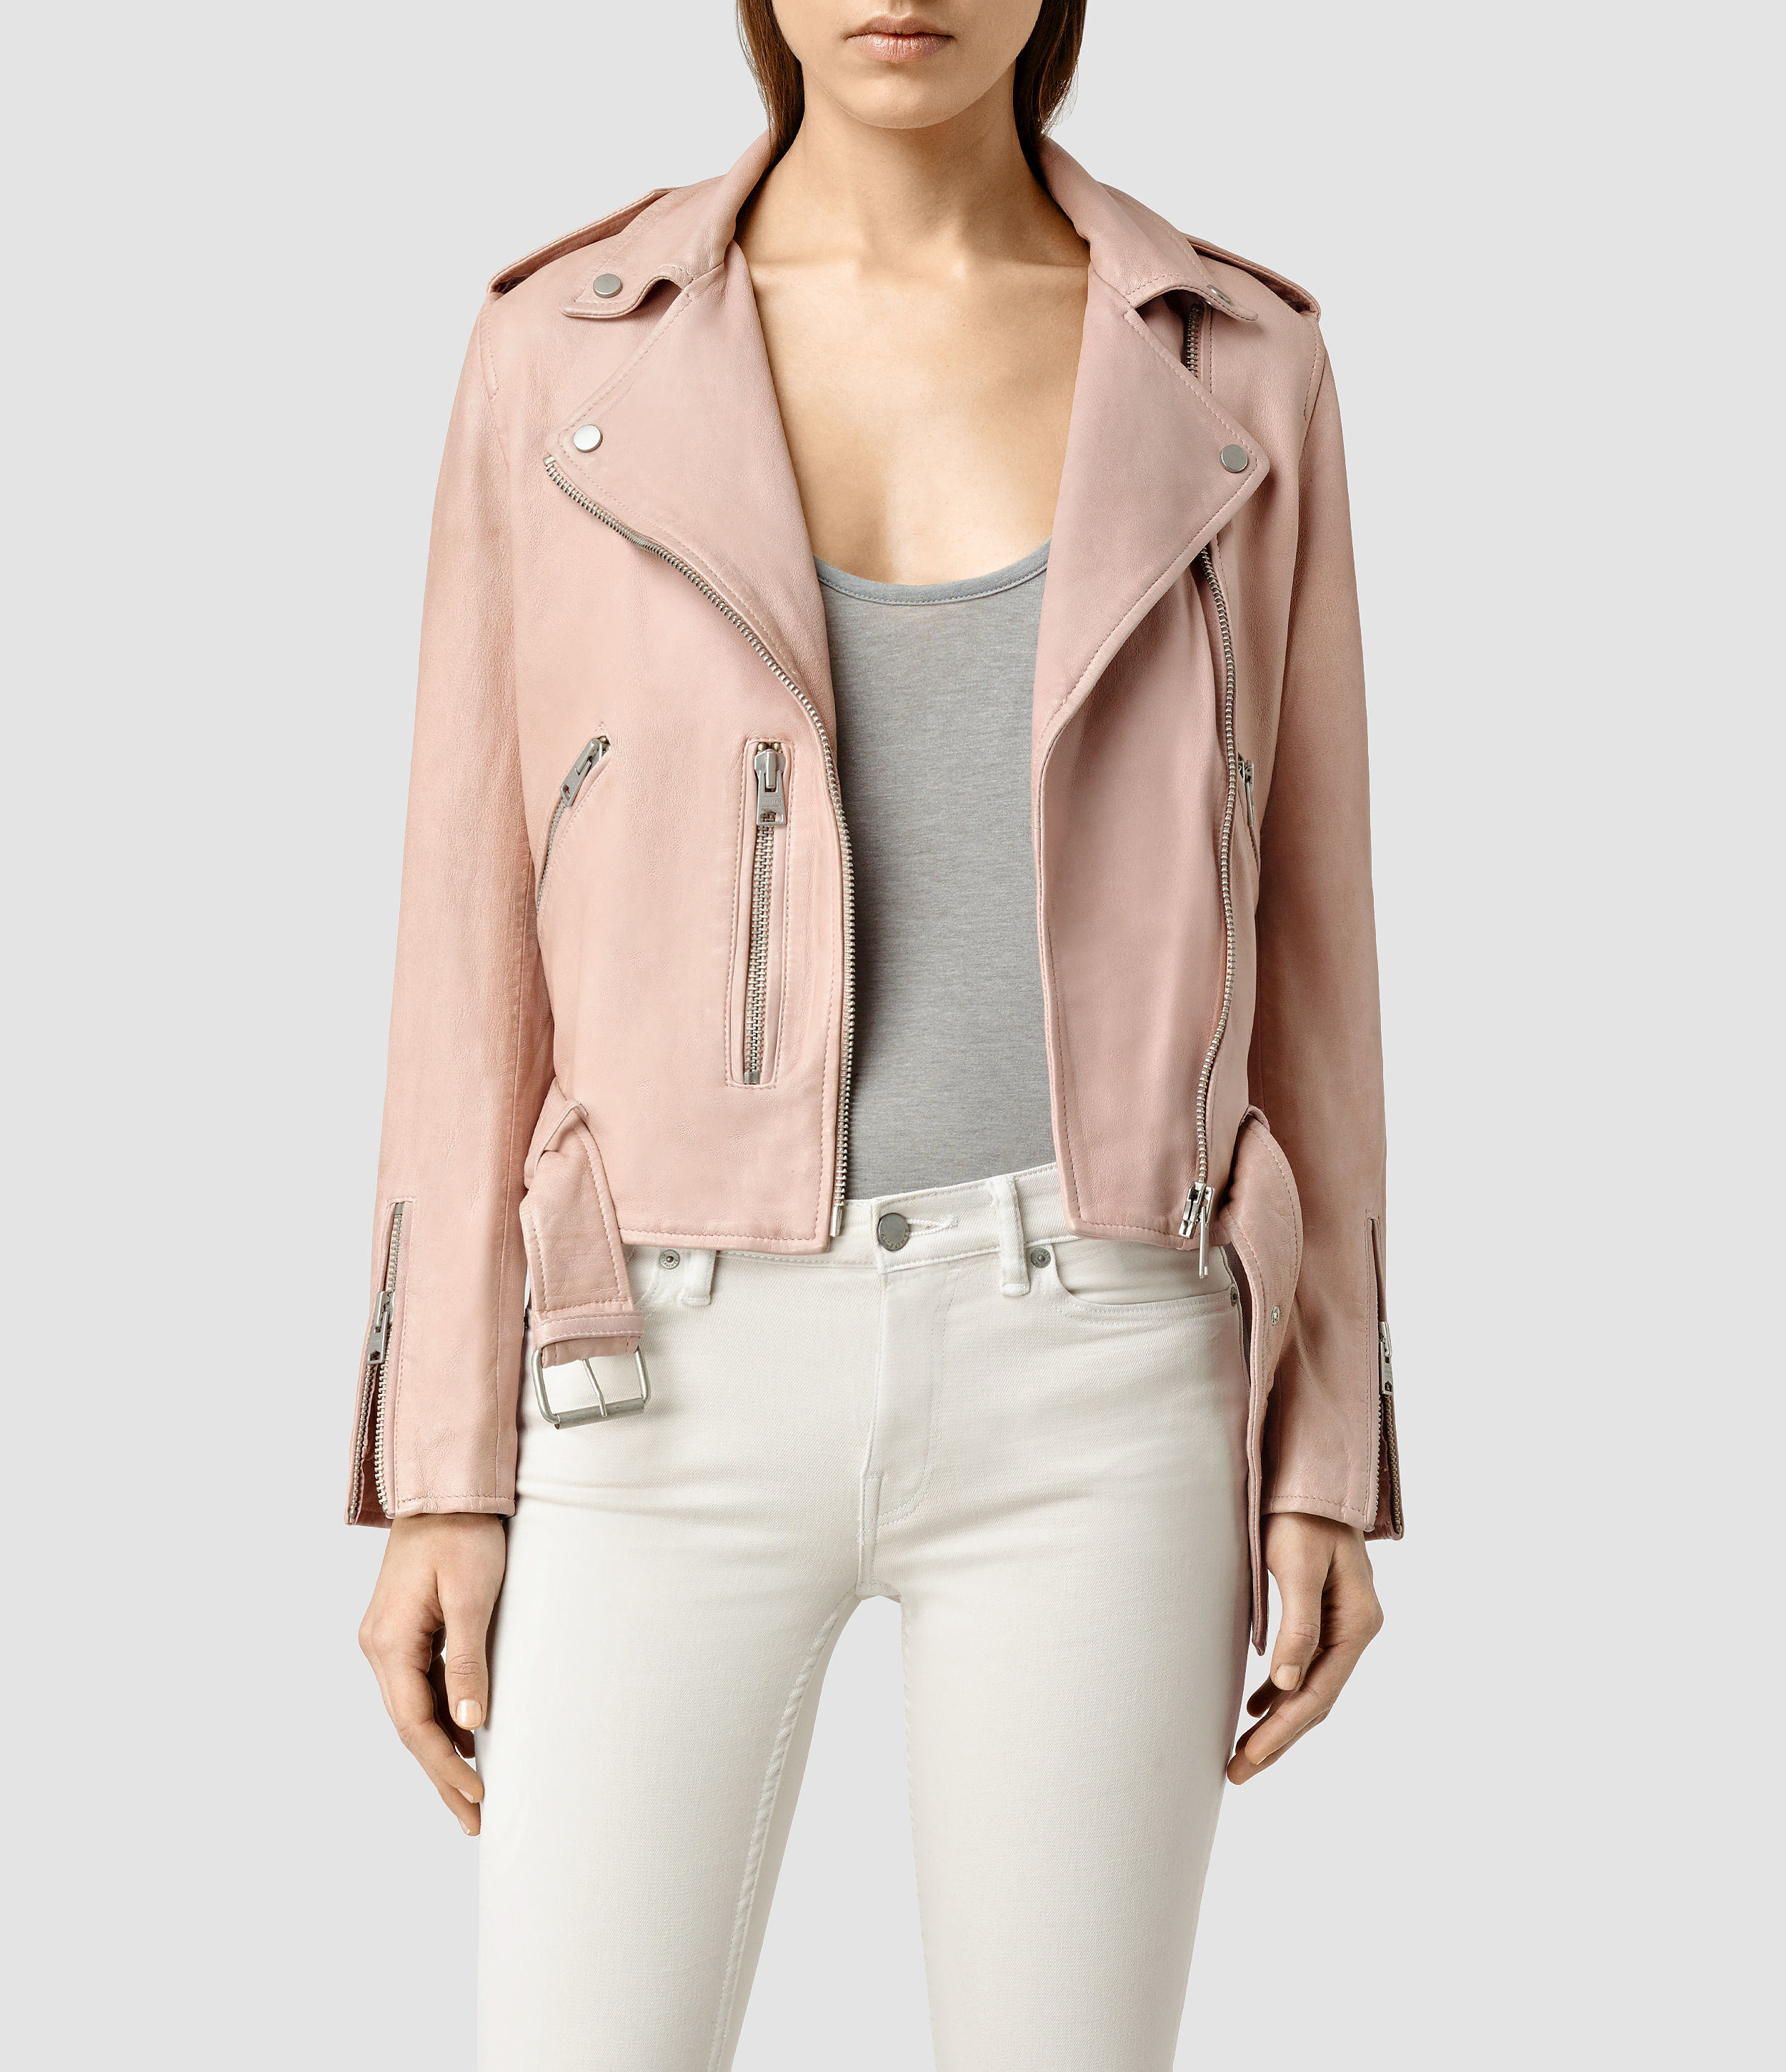 AllSaints Balfern Leather Biker Jacket - ShopStyle